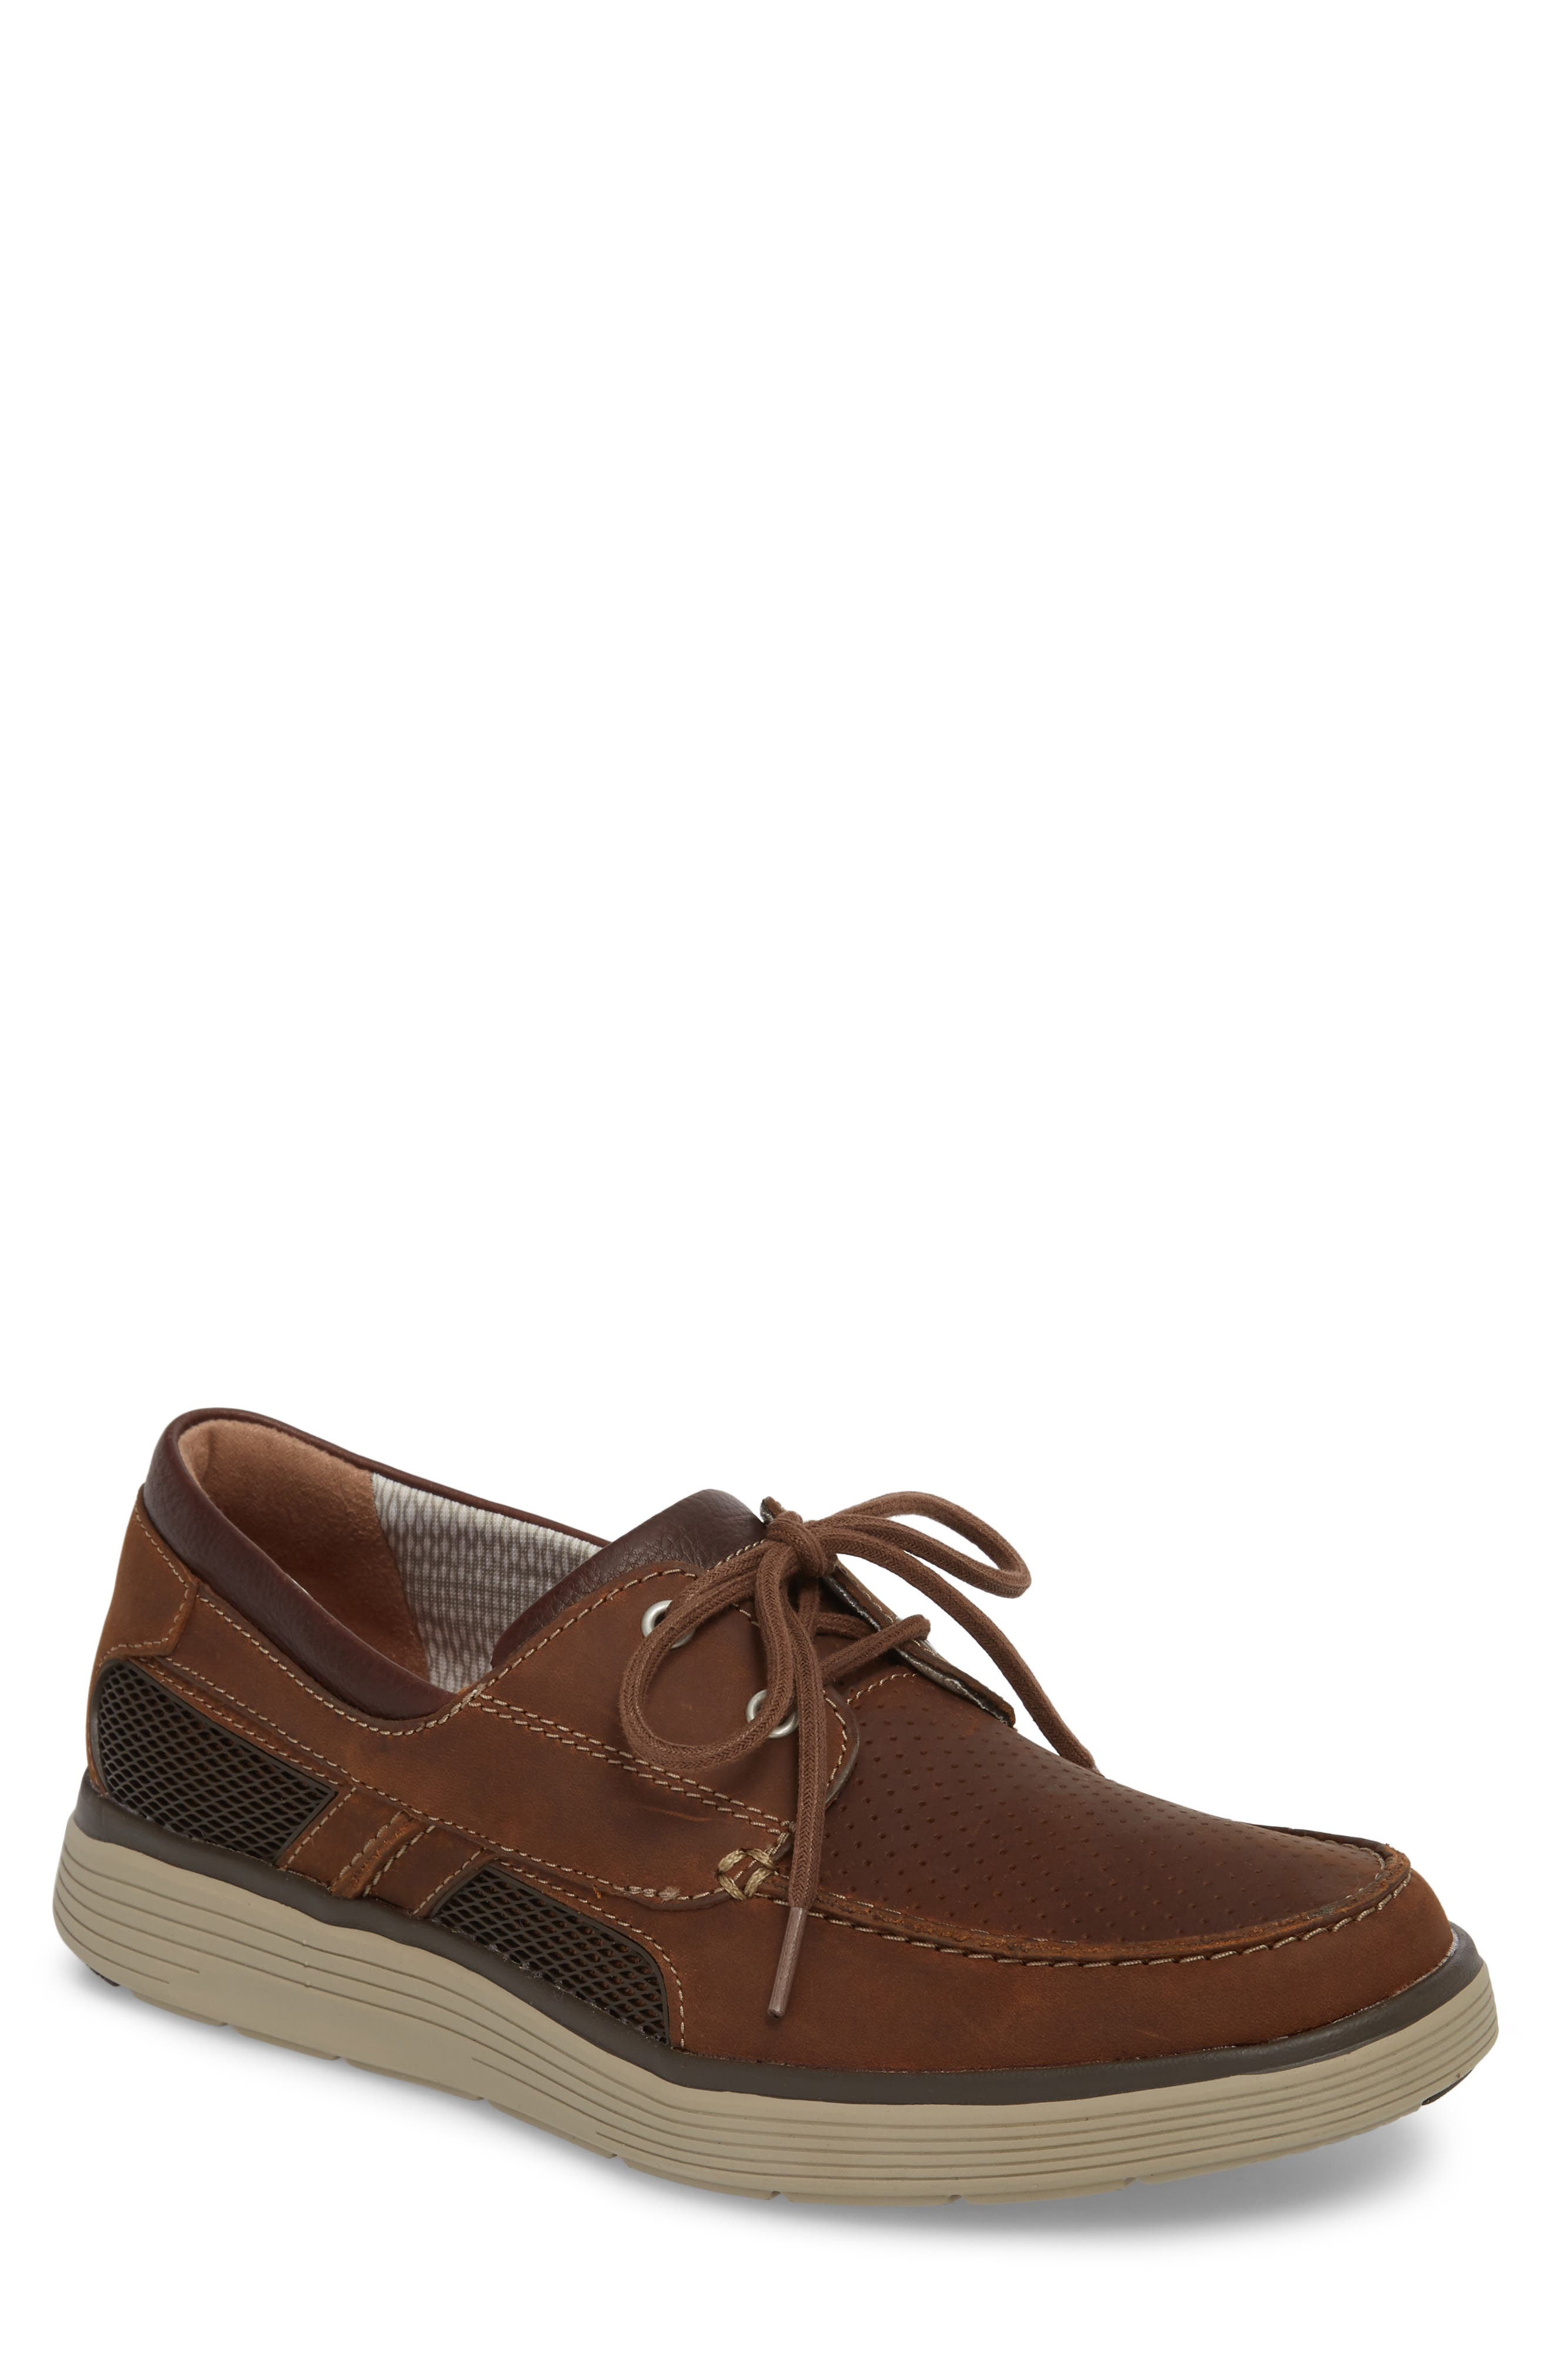 Clarks<sup>®</sup> Unabobe Step Boat Shoe,                             Main thumbnail 1, color,                             DARK TAN LEATHER